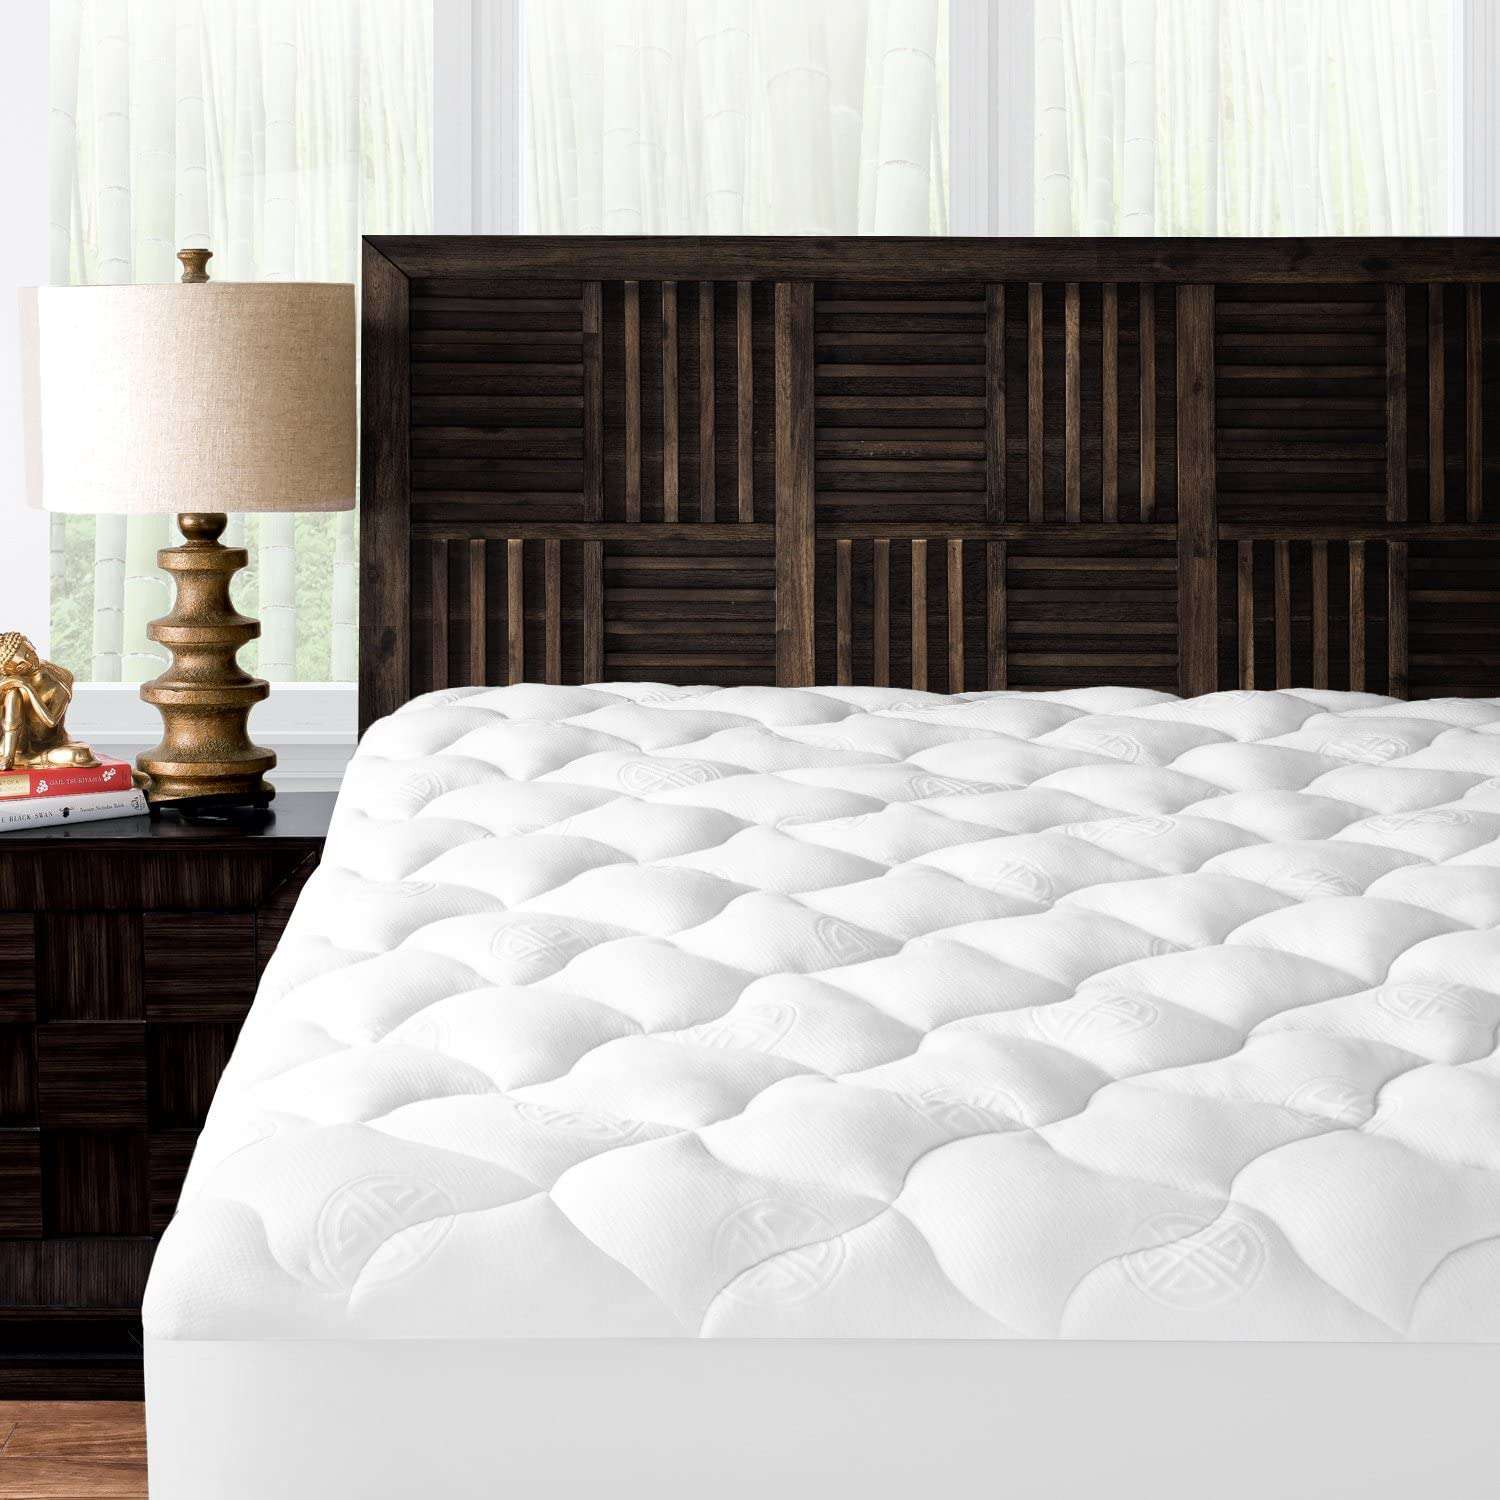 Mandarin Home Collection Ultra Soft Rayon Derived from Bamboo Plush Mattress Topper